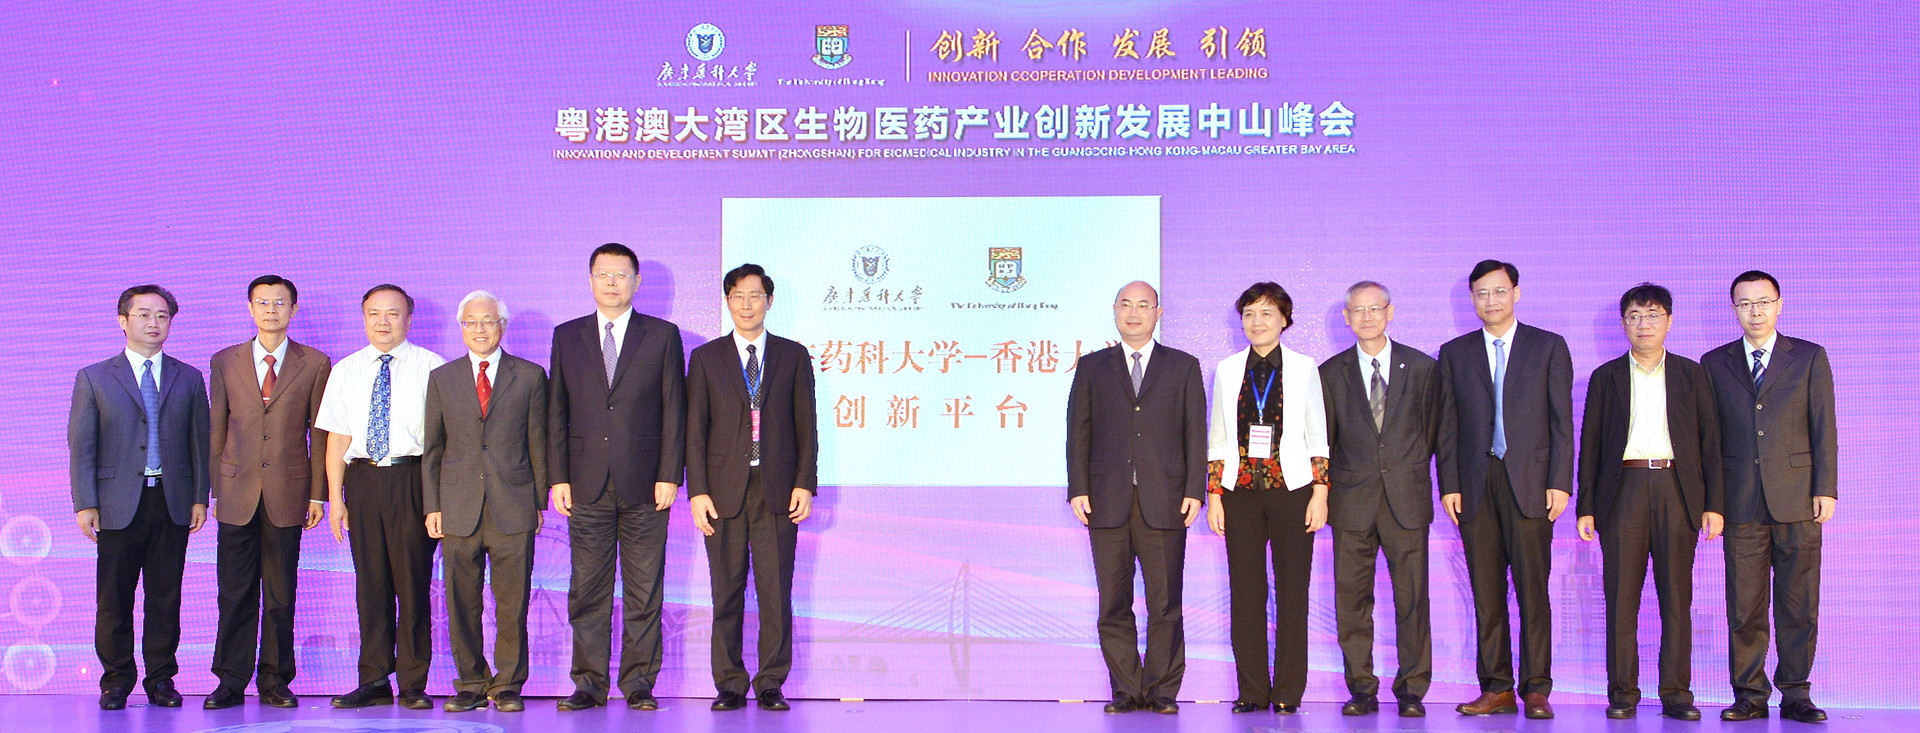 GDPU-HKU Innovations Platform launch ceremony